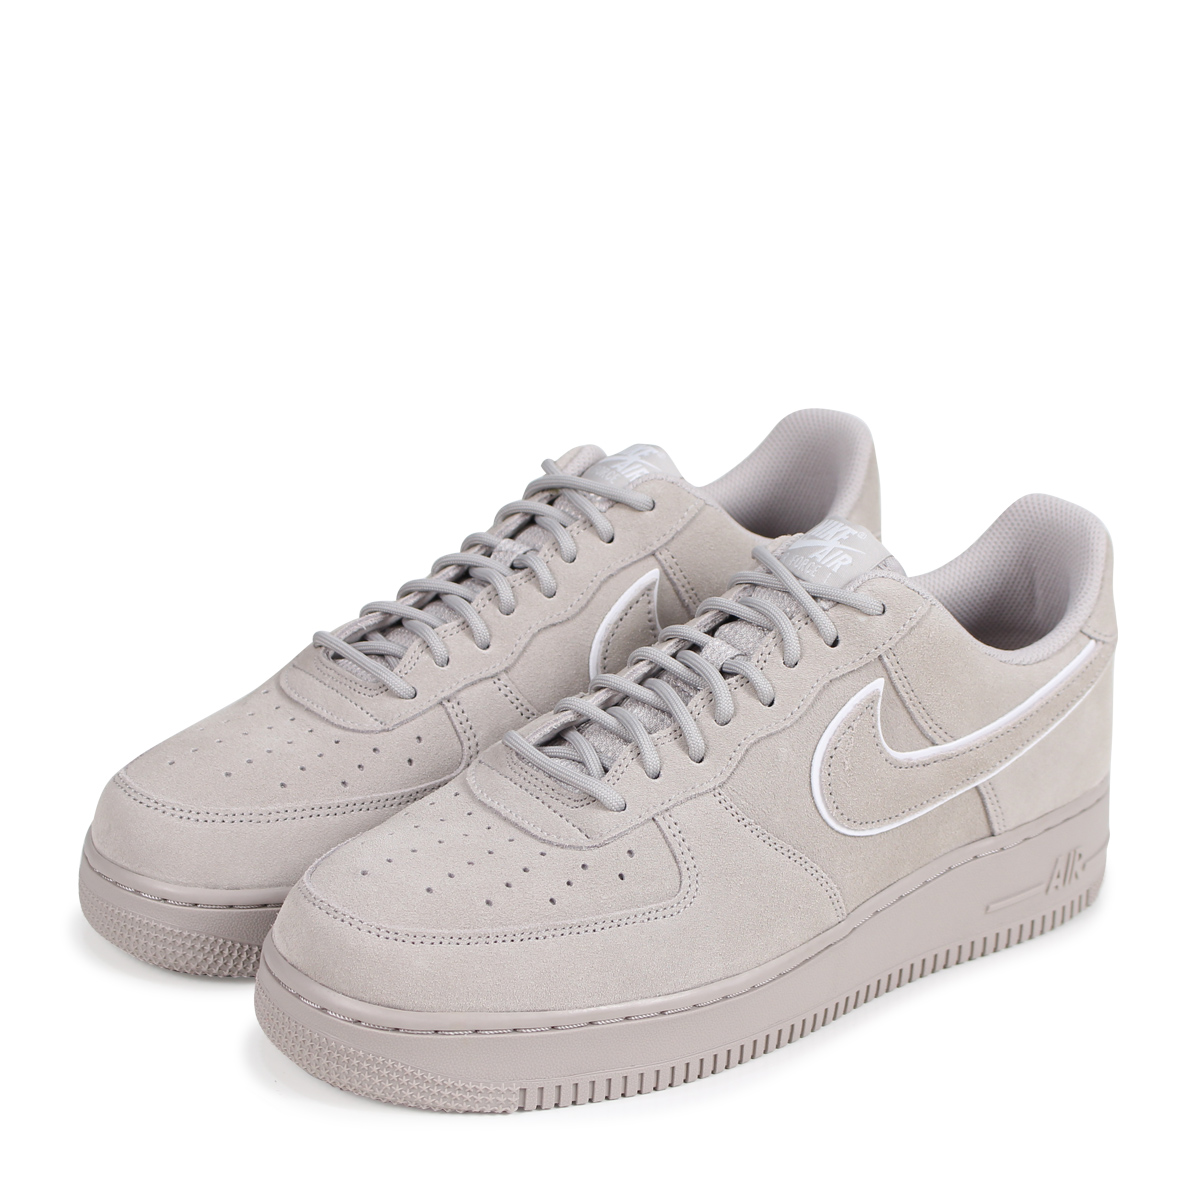 Nike Air Force 1 ´07 LV8 Suede | Gray | Sneakers | AA1117